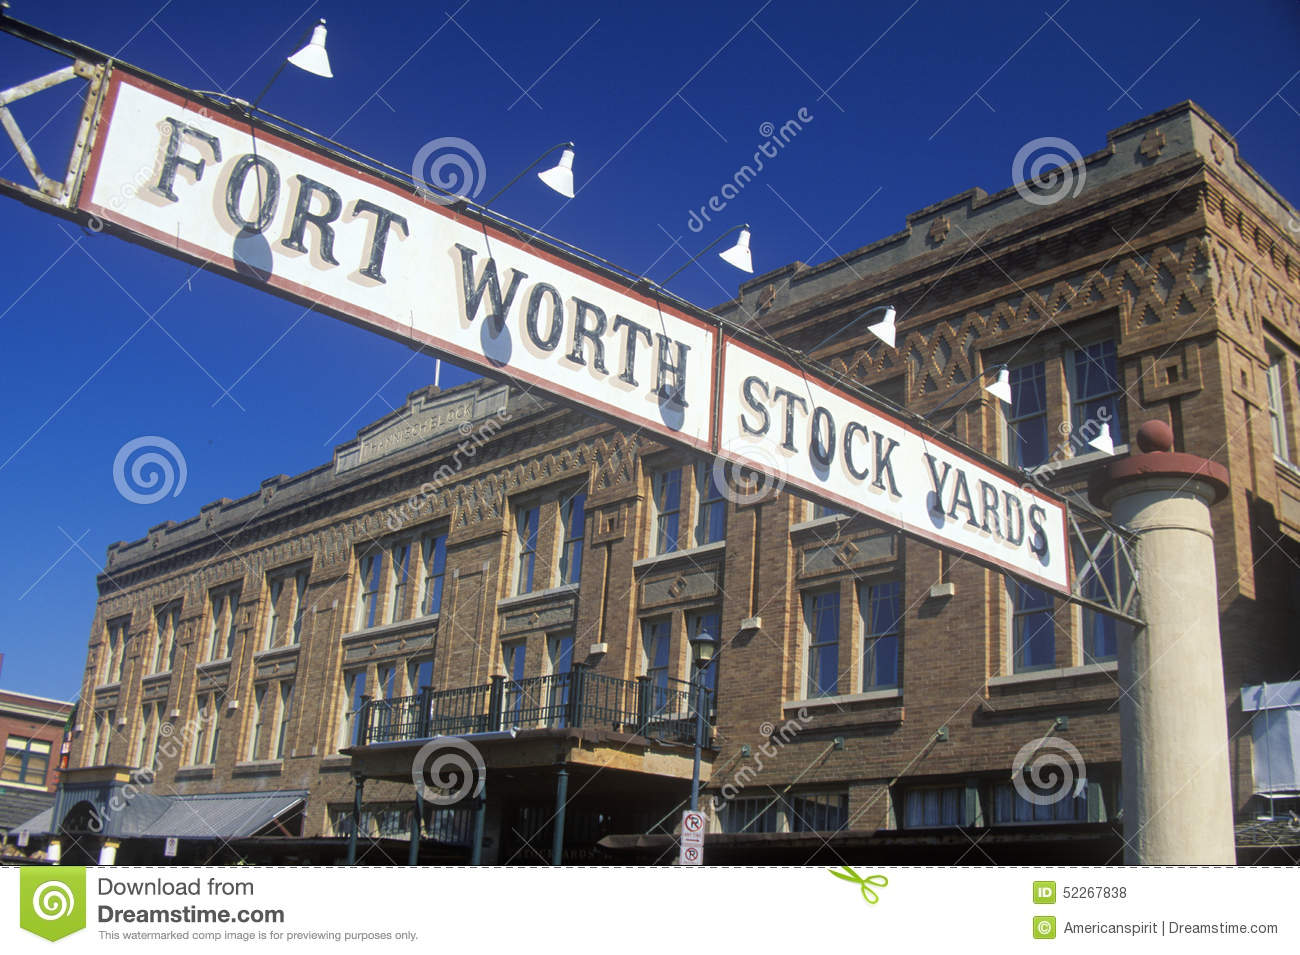 Banner at the Fort Worth Stock Yards with historic hotel, Ft. Worth, TX